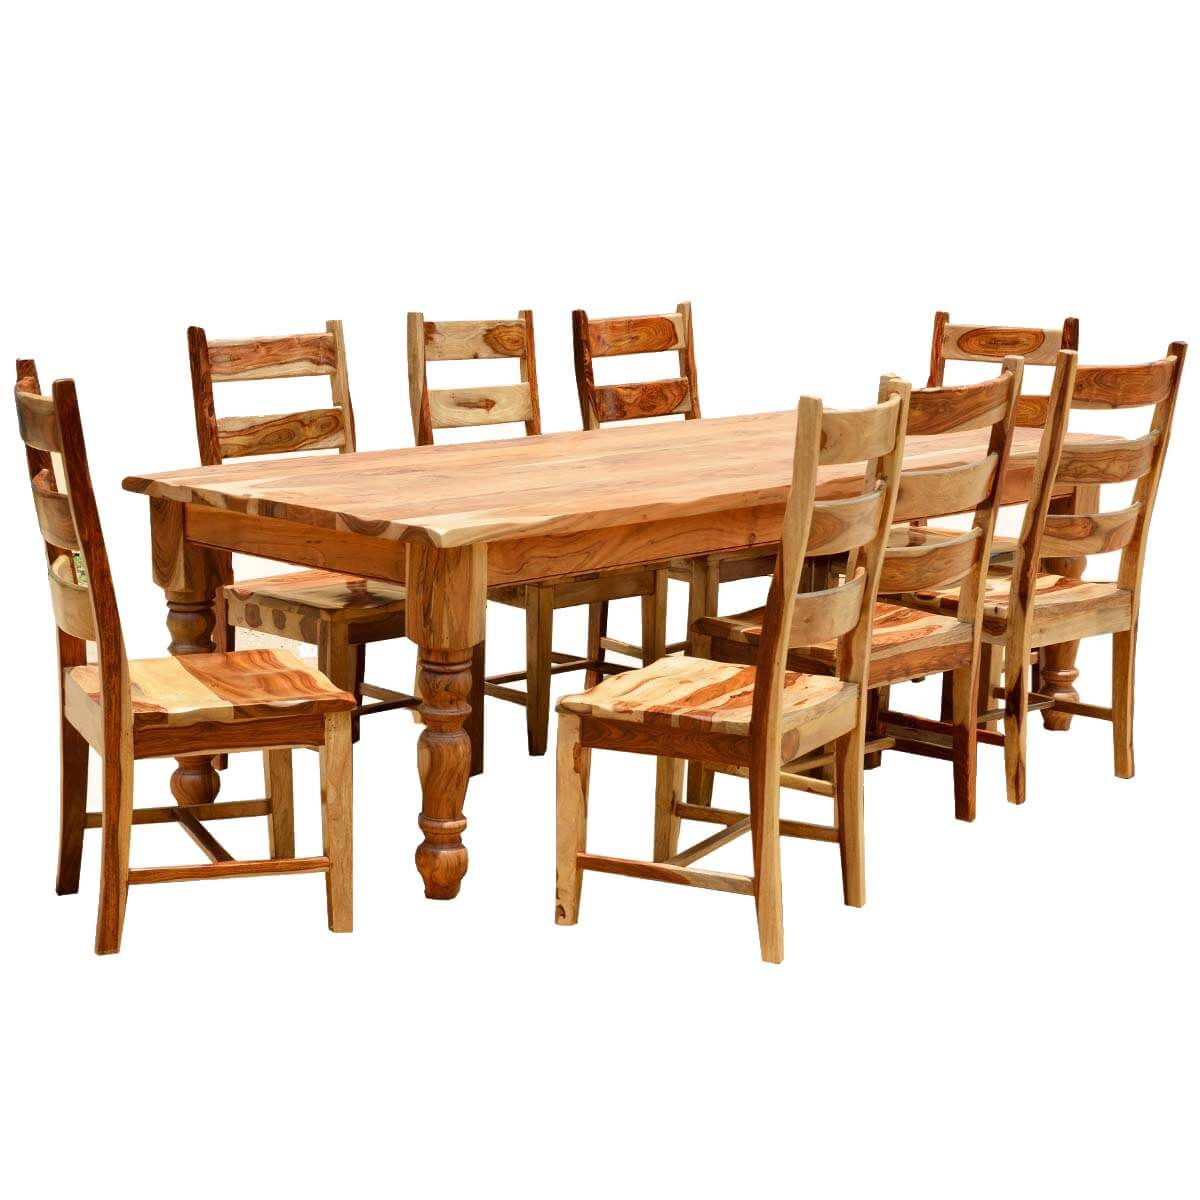 Rustic solid wood farmhouse dining room table chair set for Wooden dining room furniture